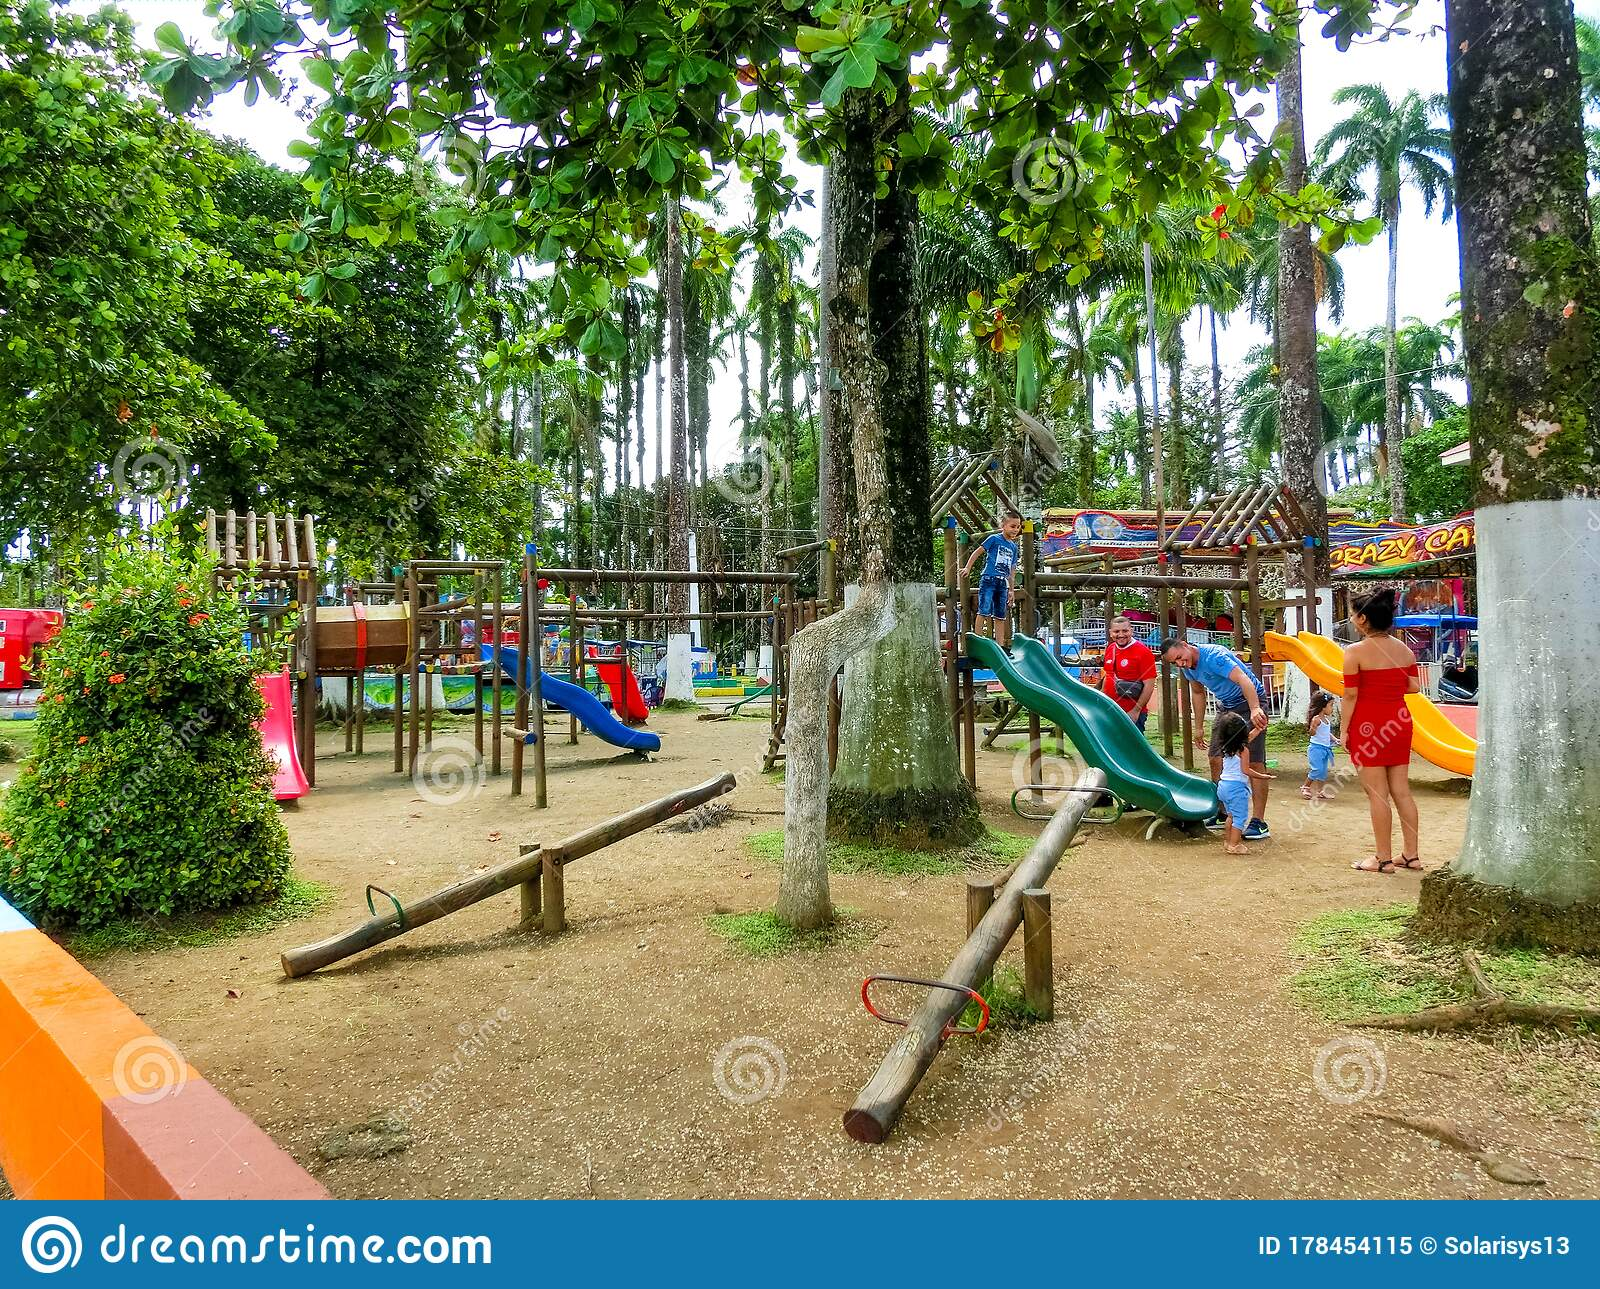 Puerto Limon Costa Rica December 8 2019 The People At Parque Vargas City Park In Puerto Limon Costa Rica Editorial Image Image Of National Editorial 178454115